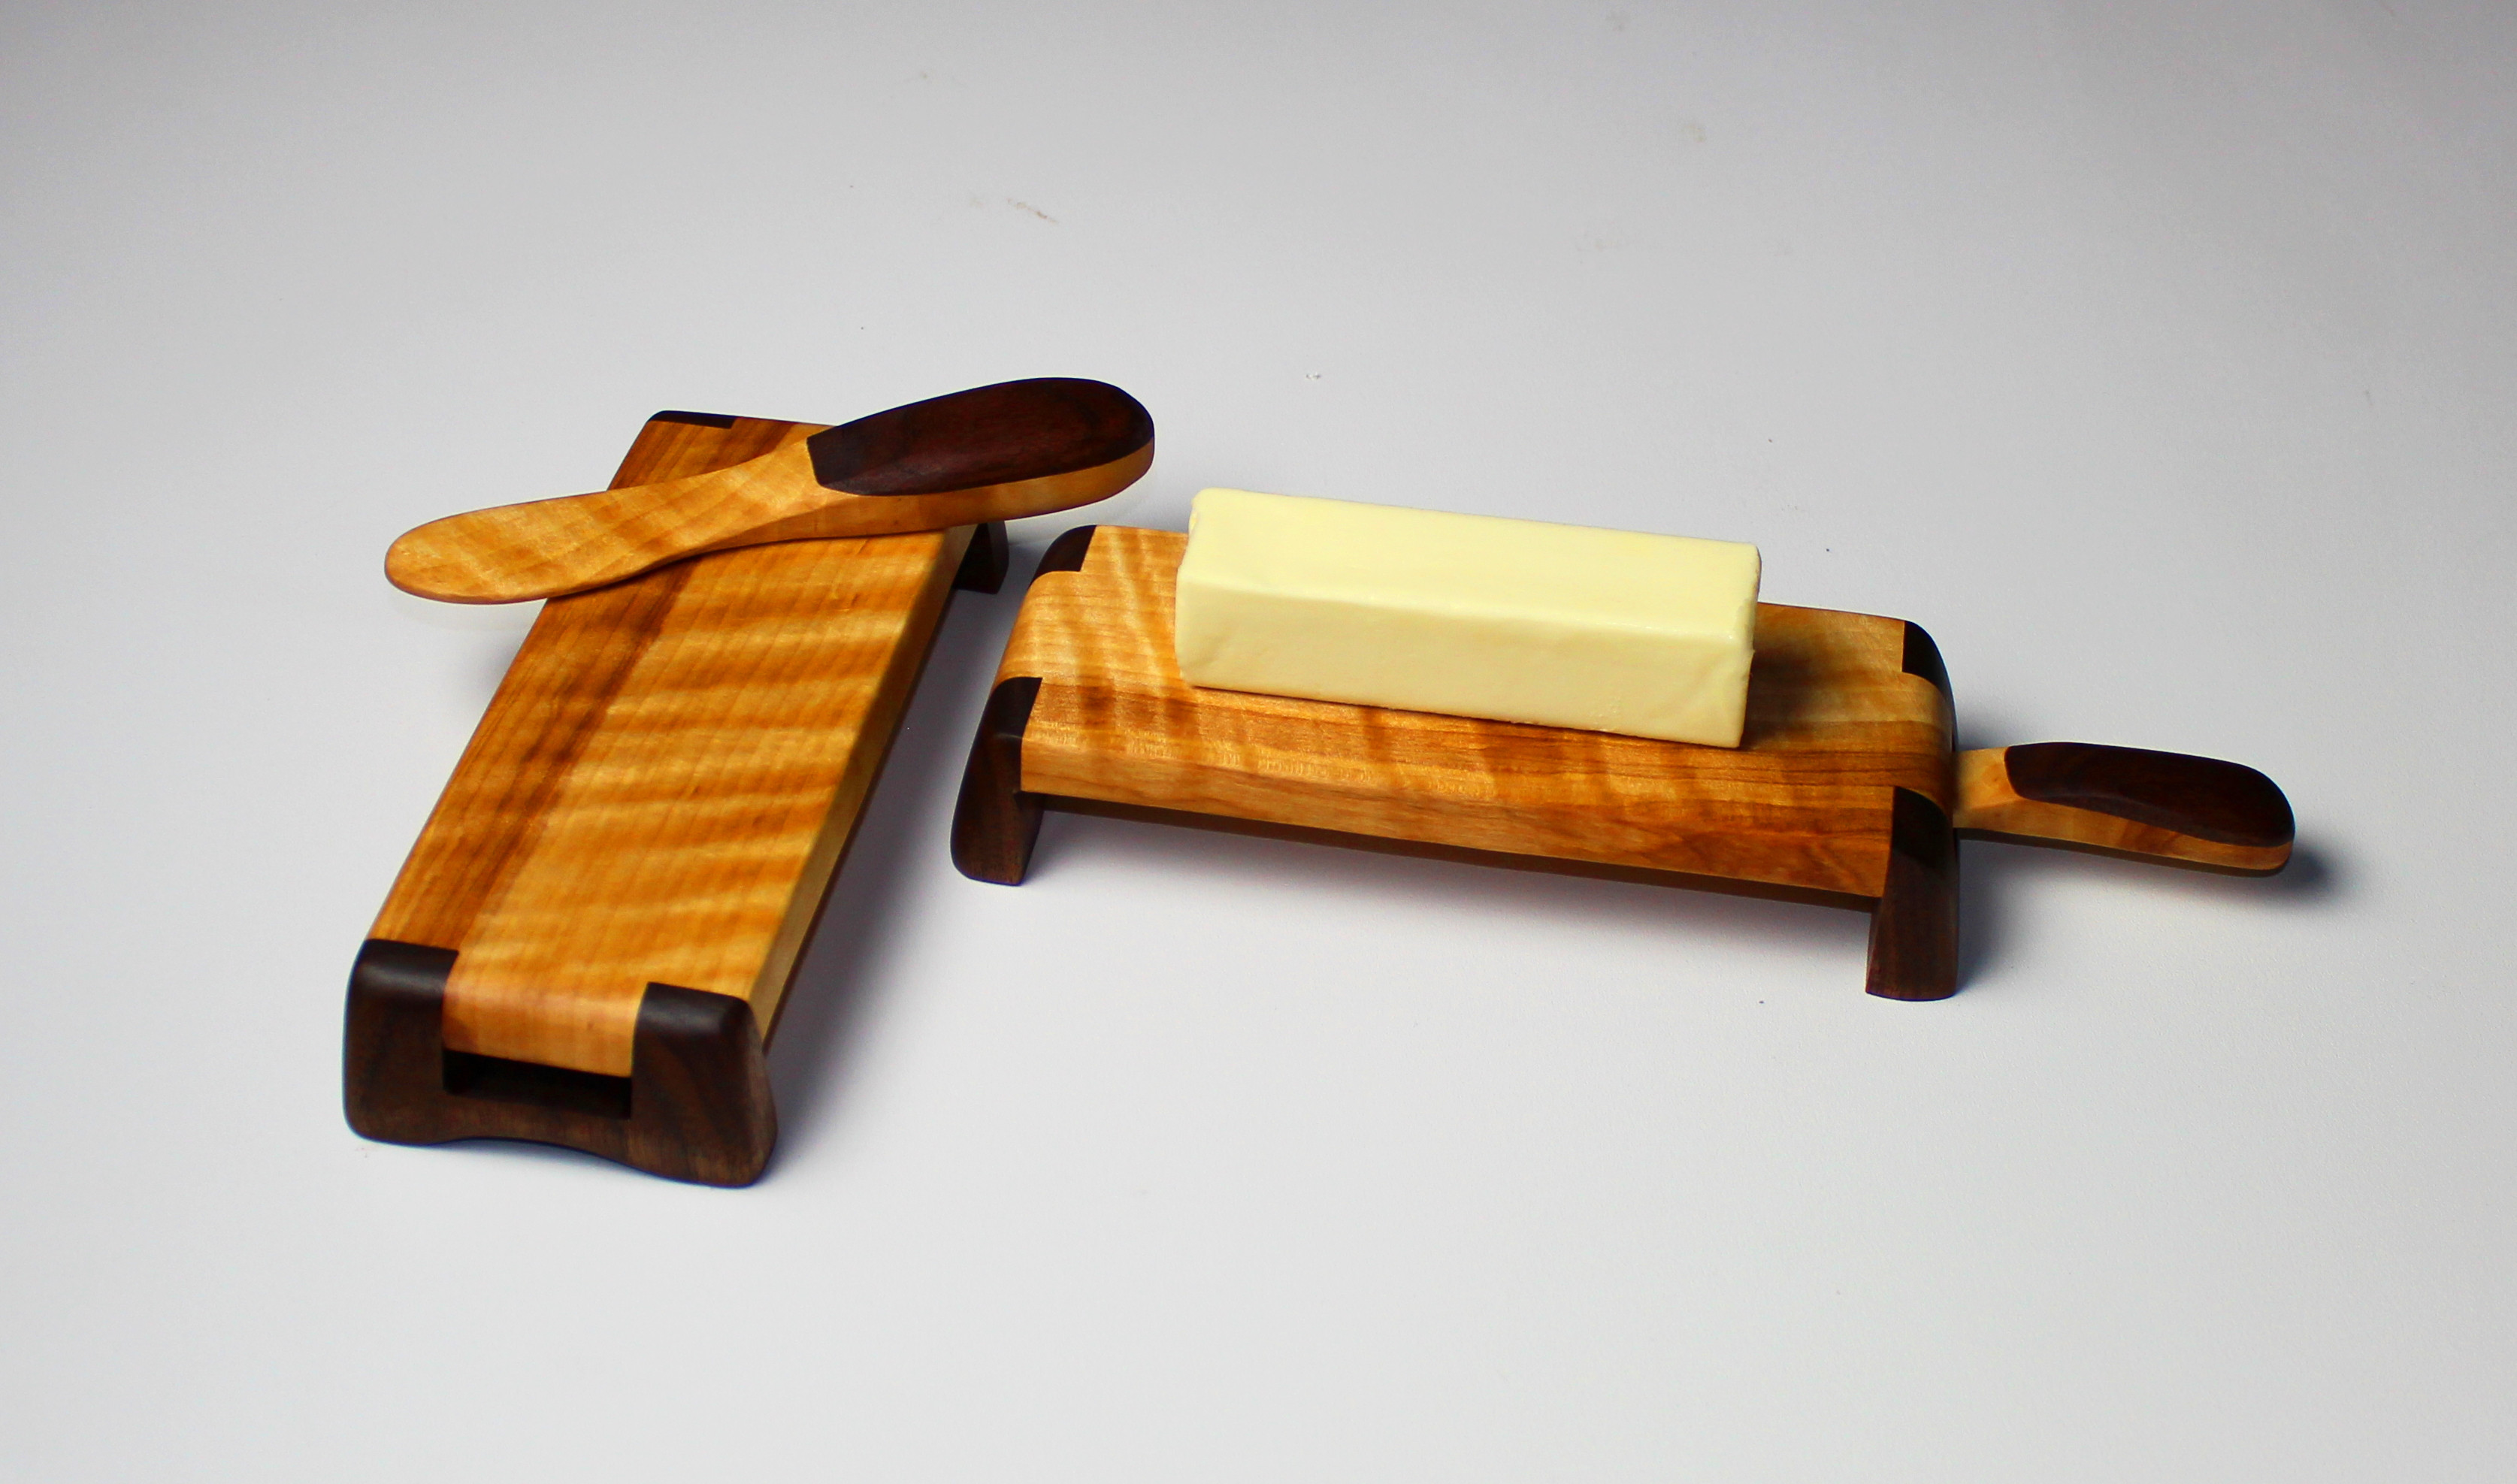 Best ideas about Woodworker Gift Ideas . Save or Pin DIY Butter Dish and Spreader Set Now.